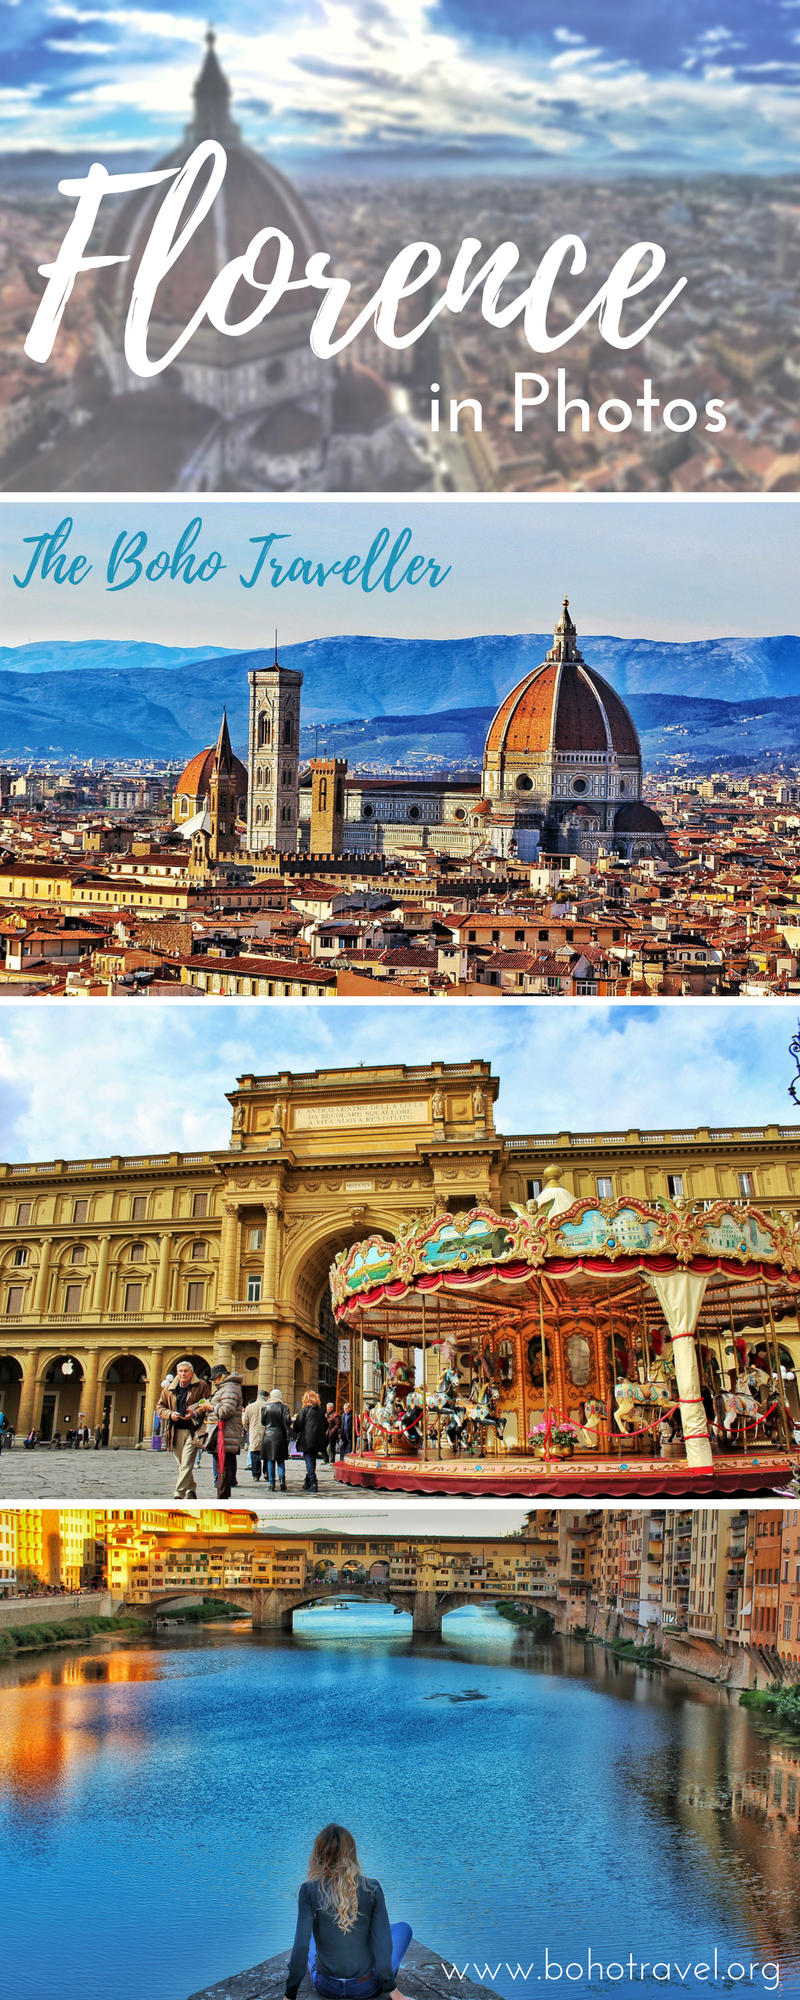 florence in photos ••••••••••••••florence travel tips • things to do